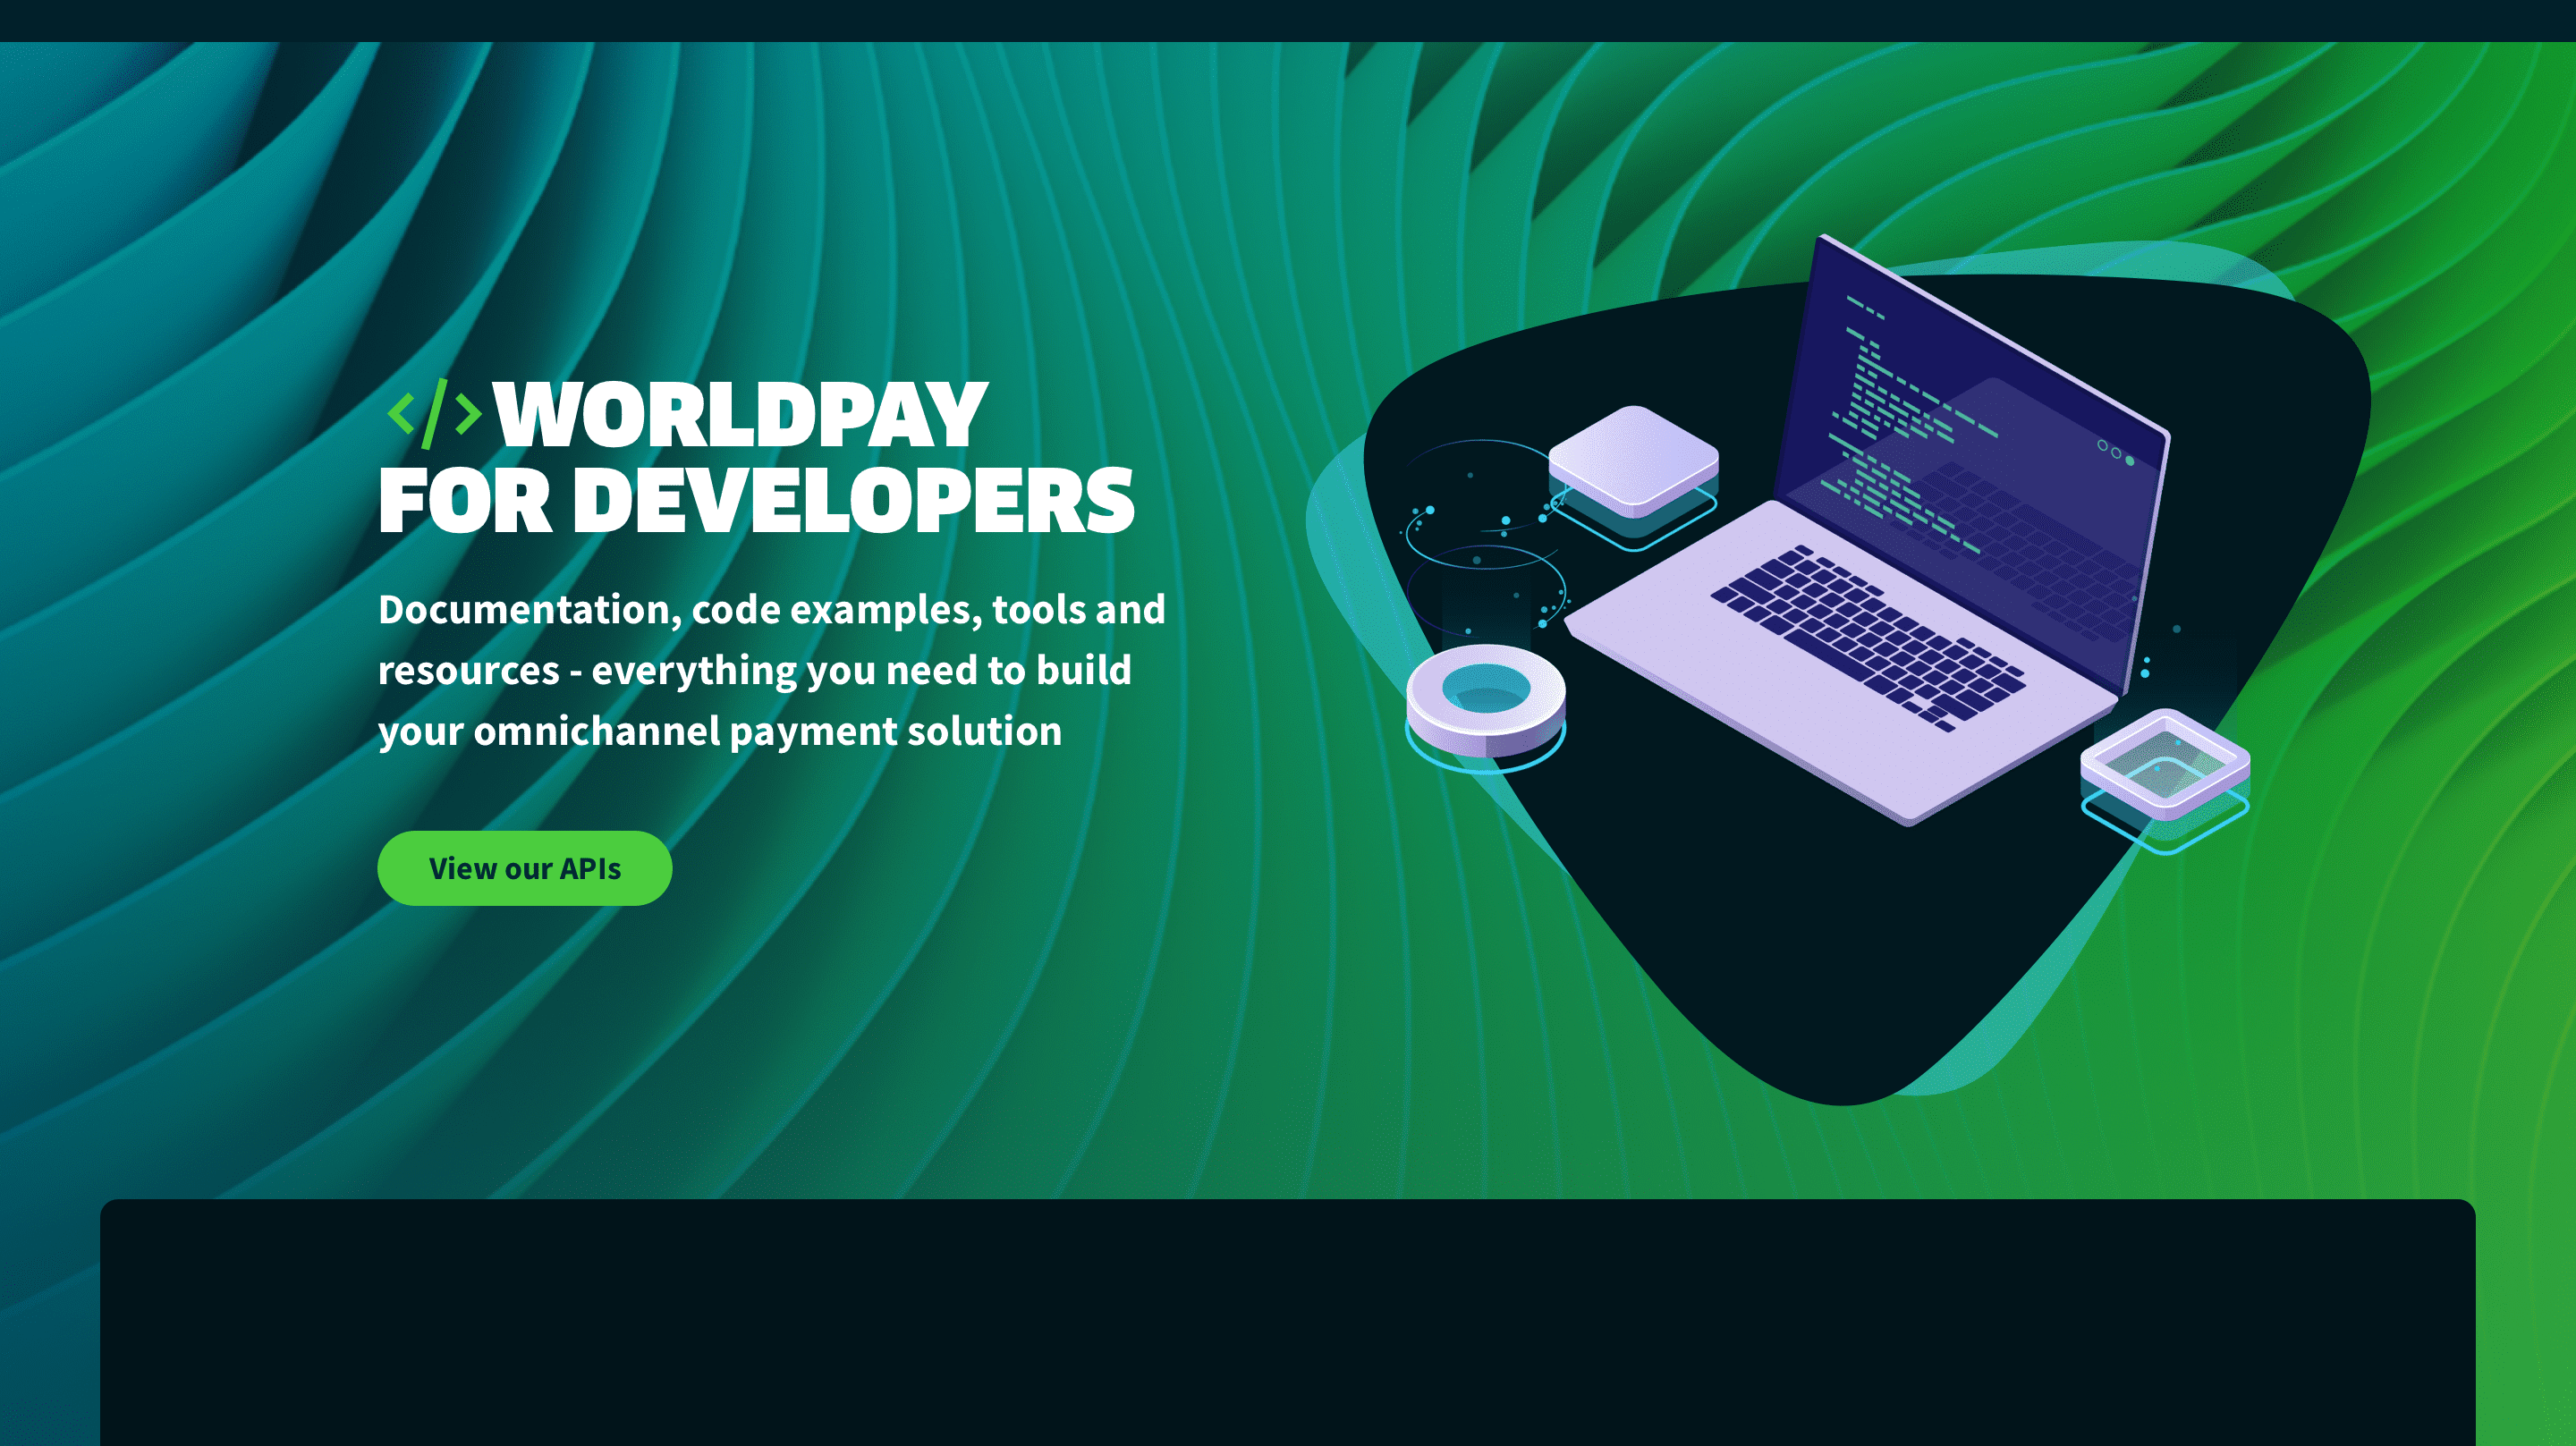 Introducing Worldpay for Developers